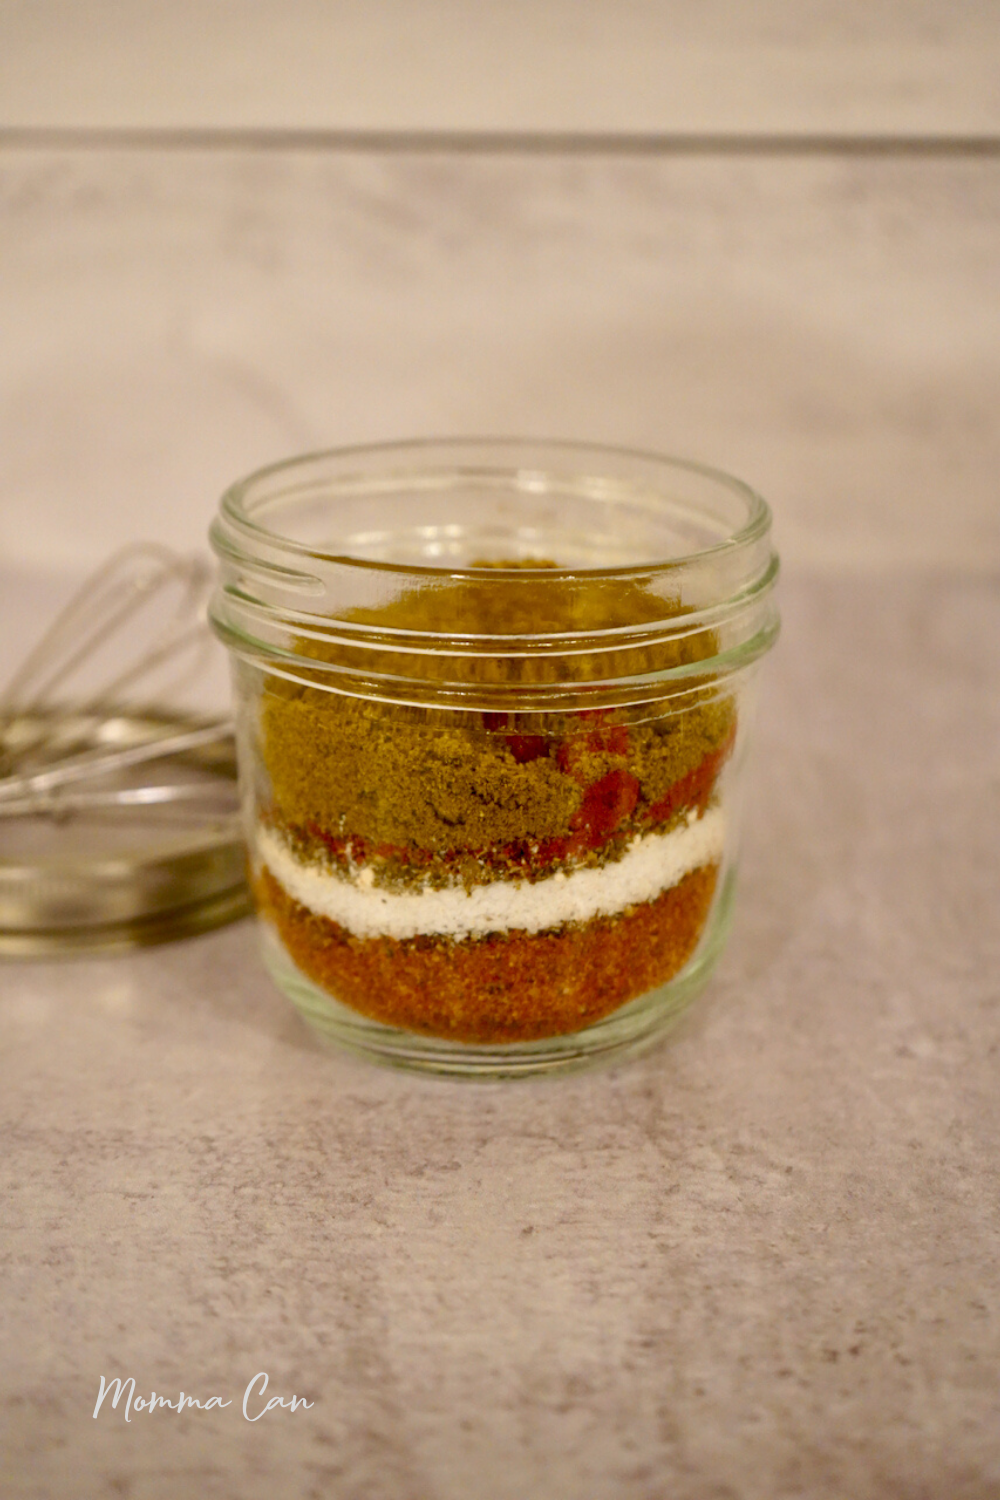 Southern Spice Seasoning Blend Mix Recipe